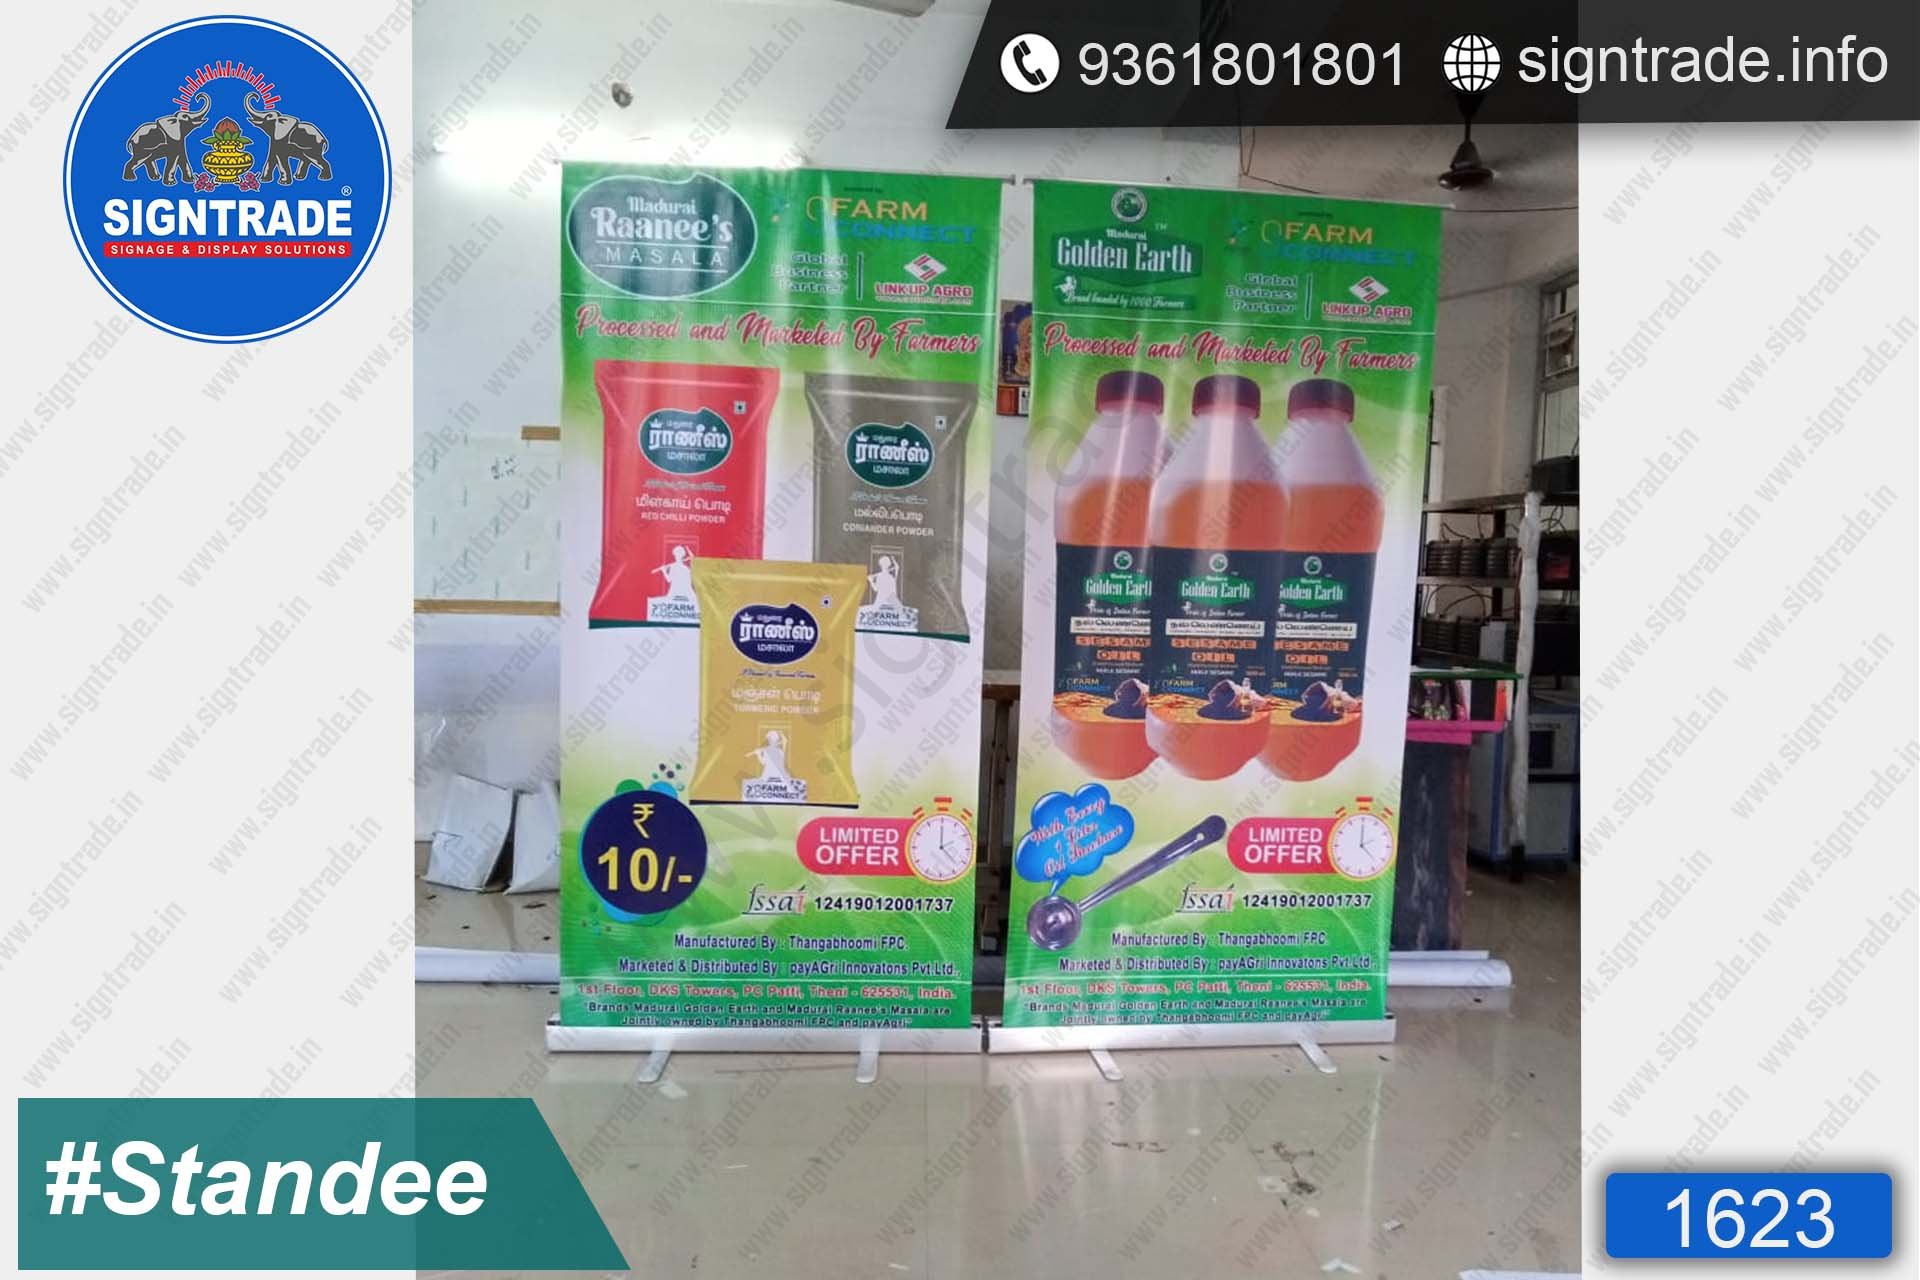 Farm Connect - Rollup Banner Stand - SIGNTRADE - Rollup Banner Stand Manufactures in Chennai